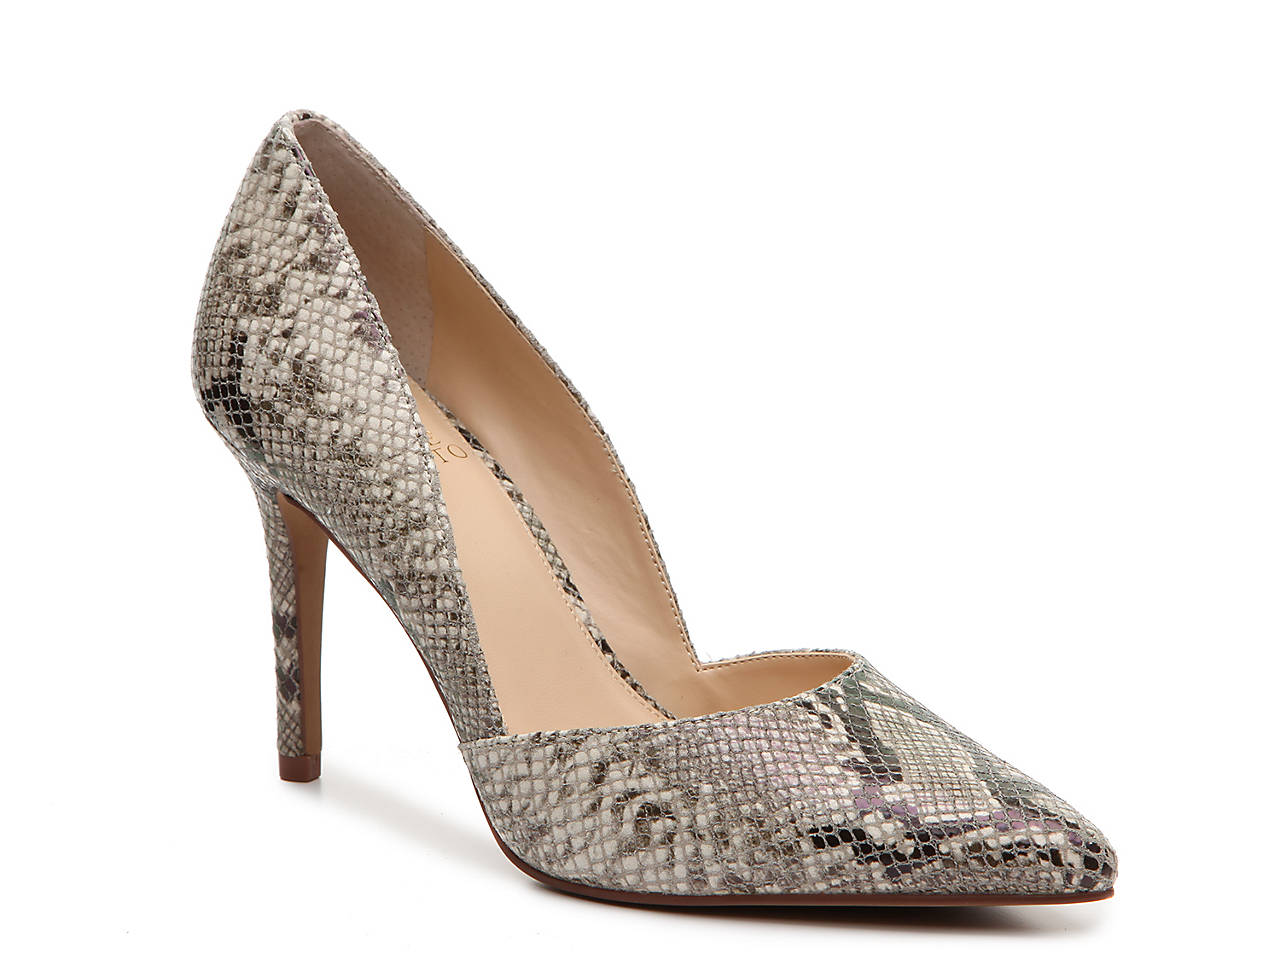 d905c6744 Vince Camuto Airmosah Pump Women's Shoes | DSW